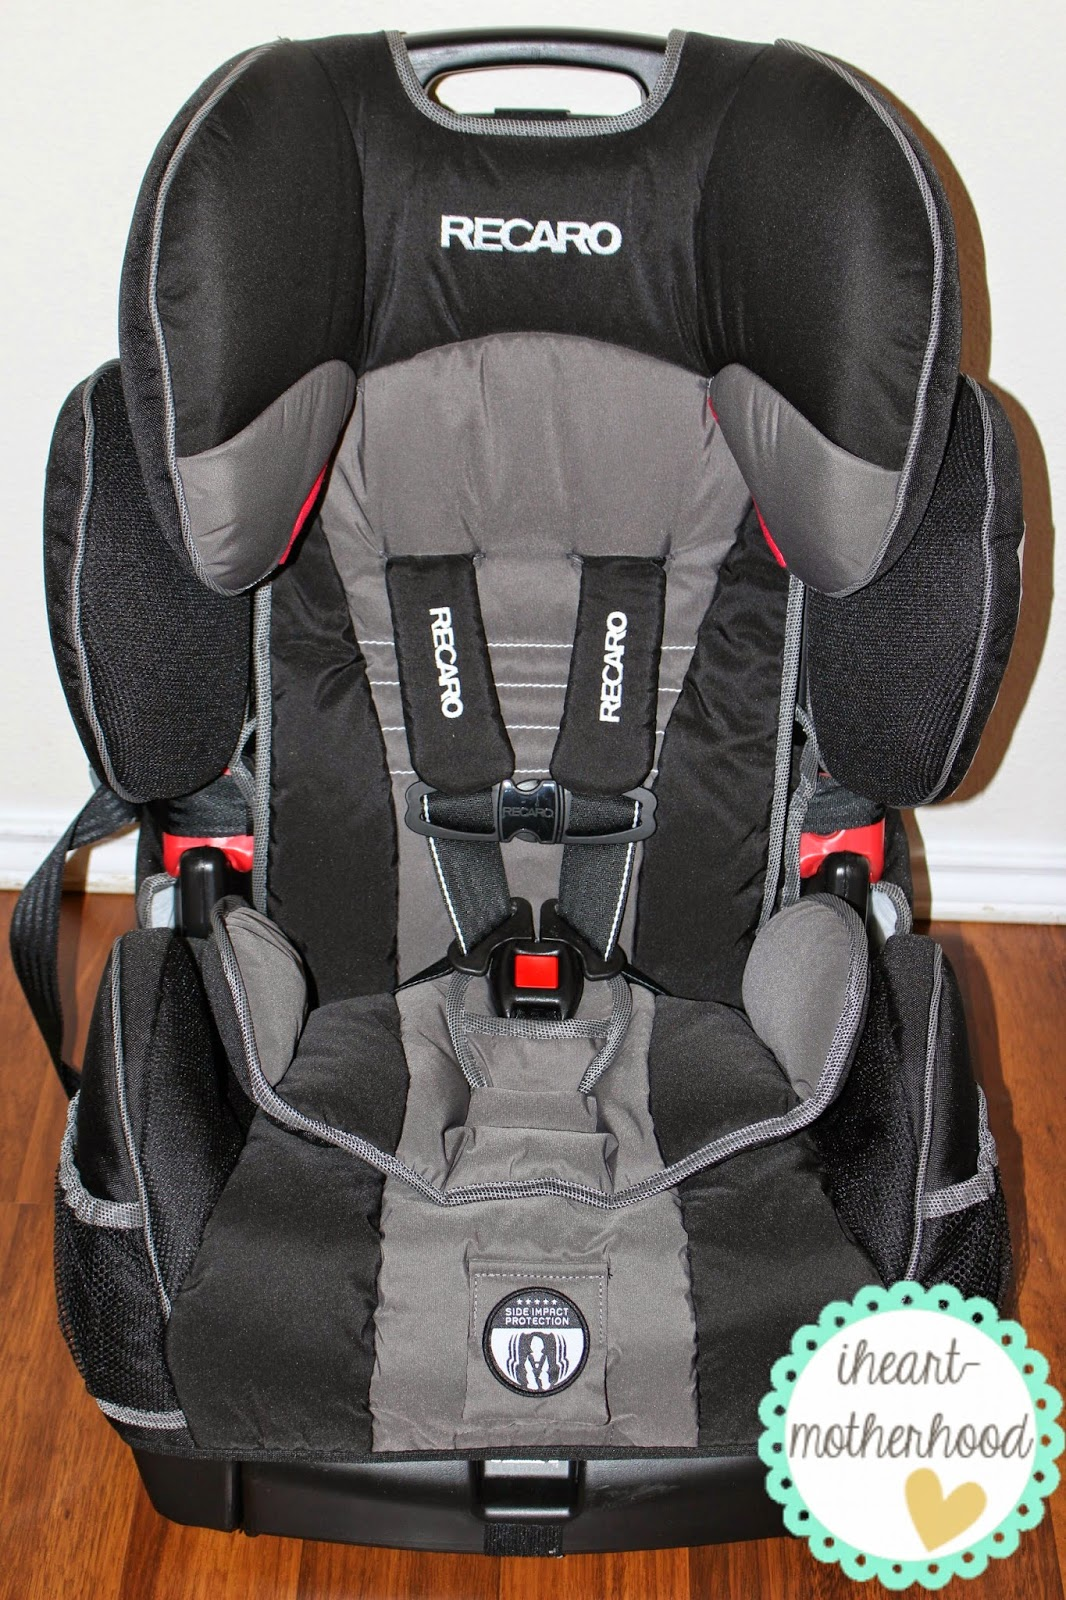 Recaro Performance Sport >> Recaro Performance Sport Car Seat Review And Giveaway Whisky